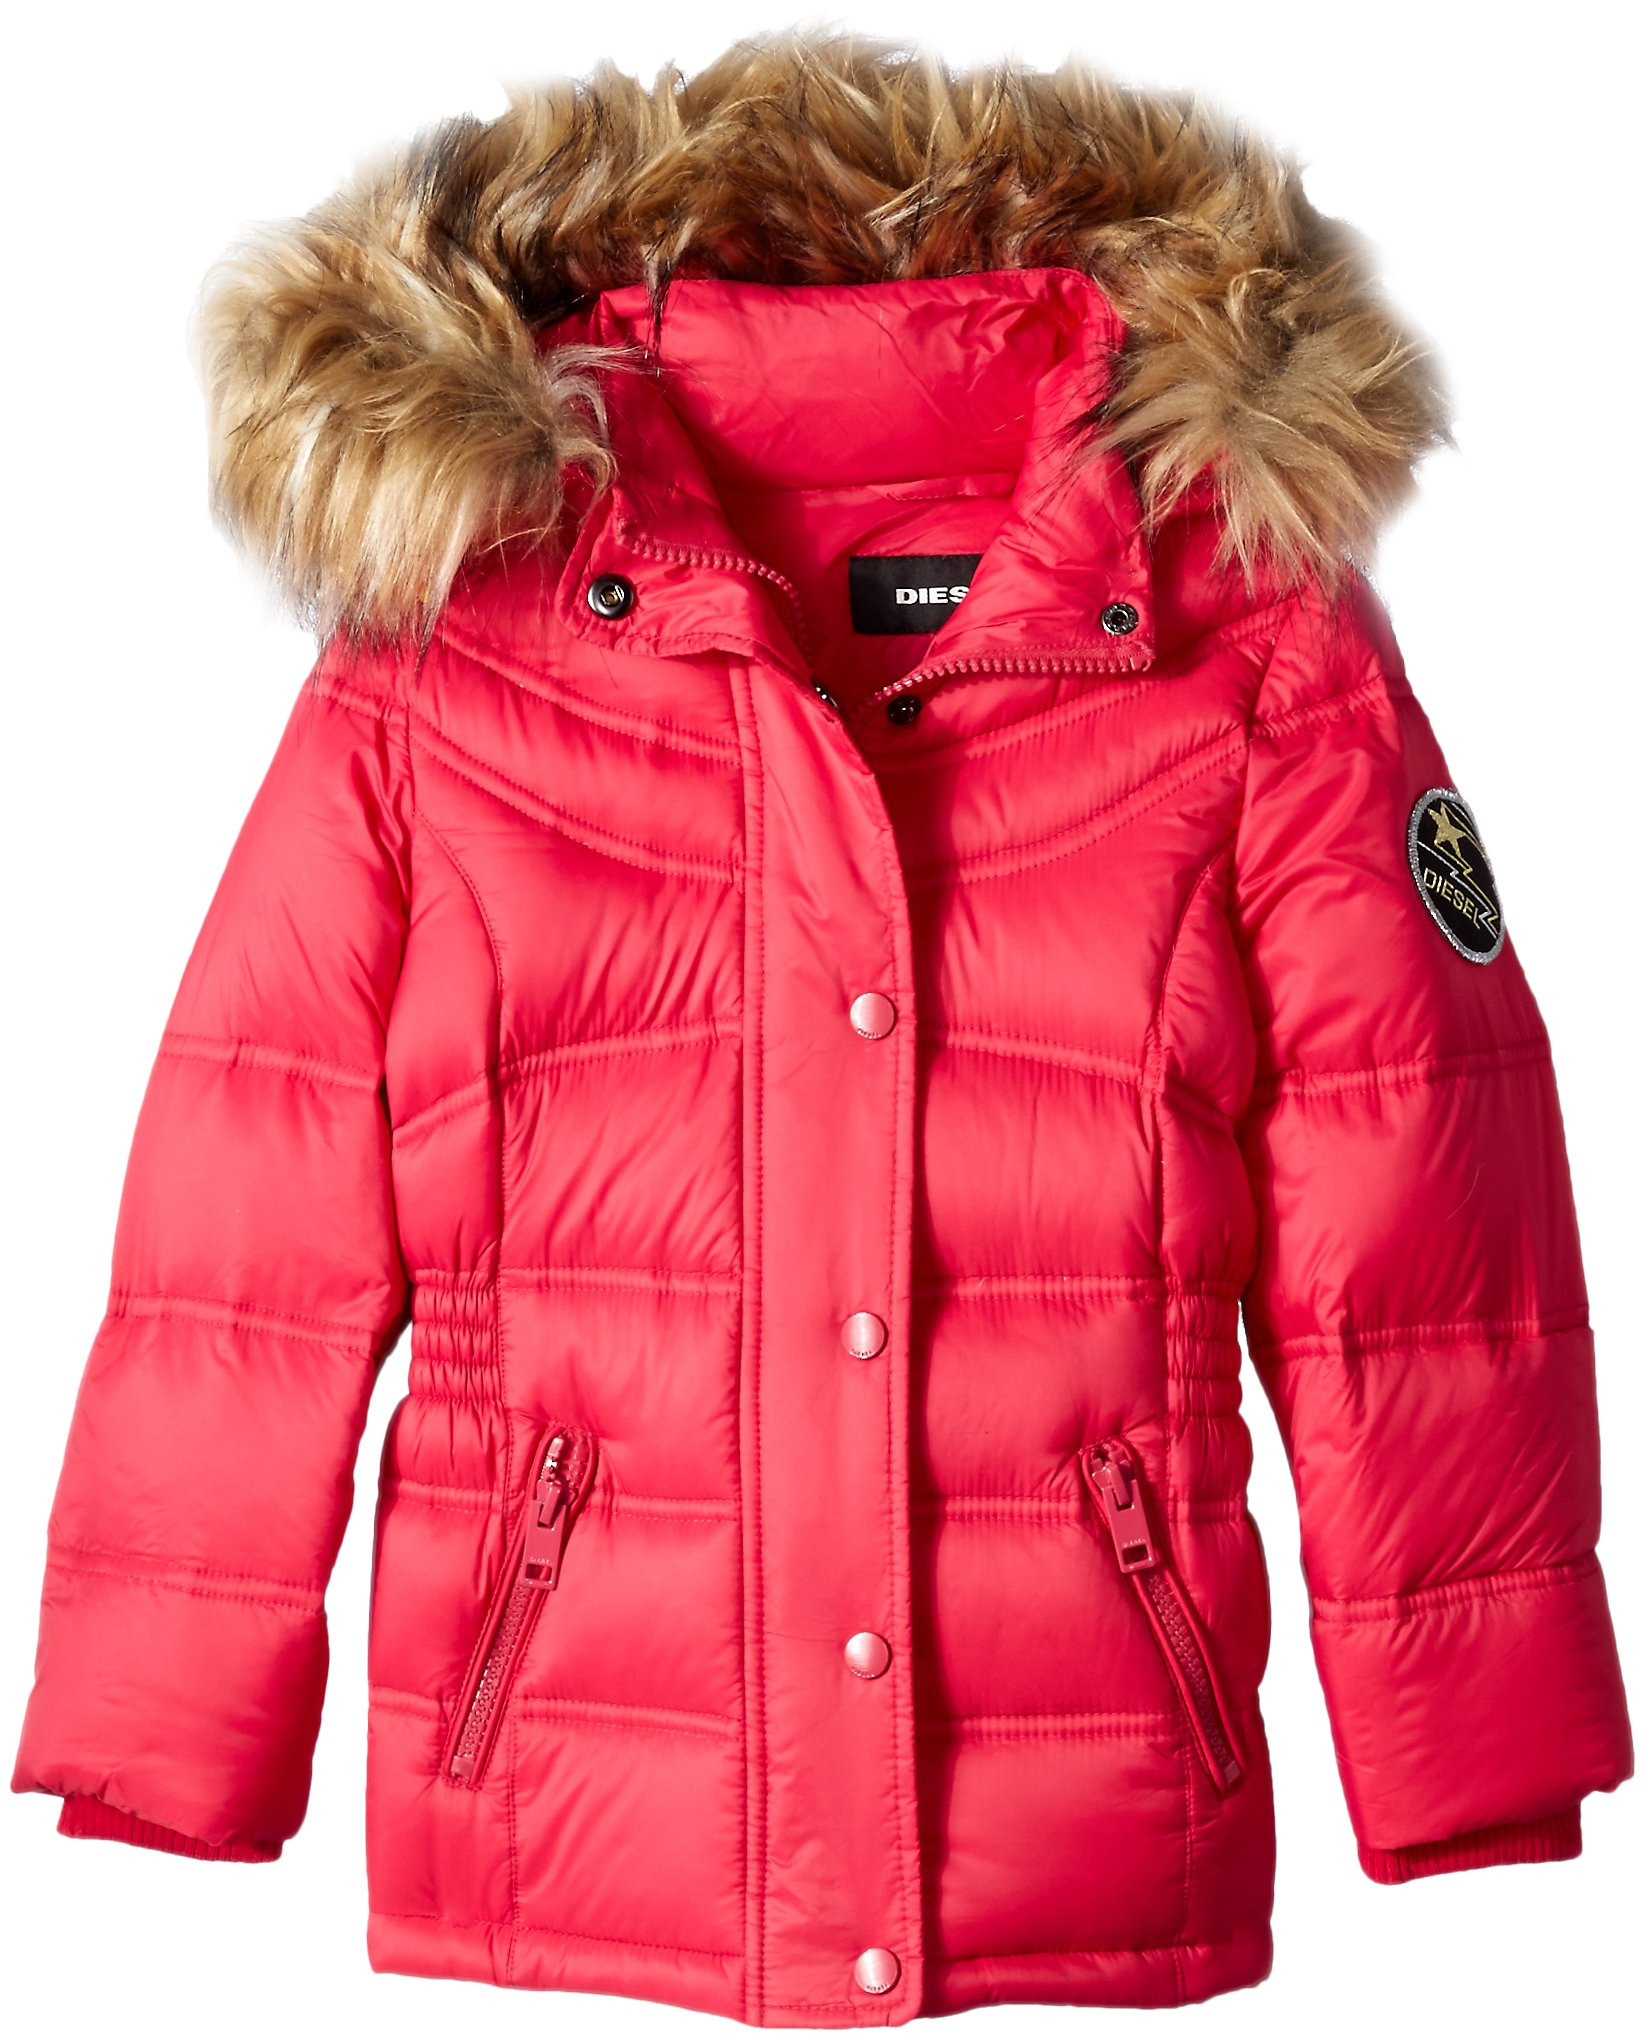 Diesel Toddler Girls' Outerwear Jacket (More Styles Available), Down Bubble-DS90H-Cherry, 4T